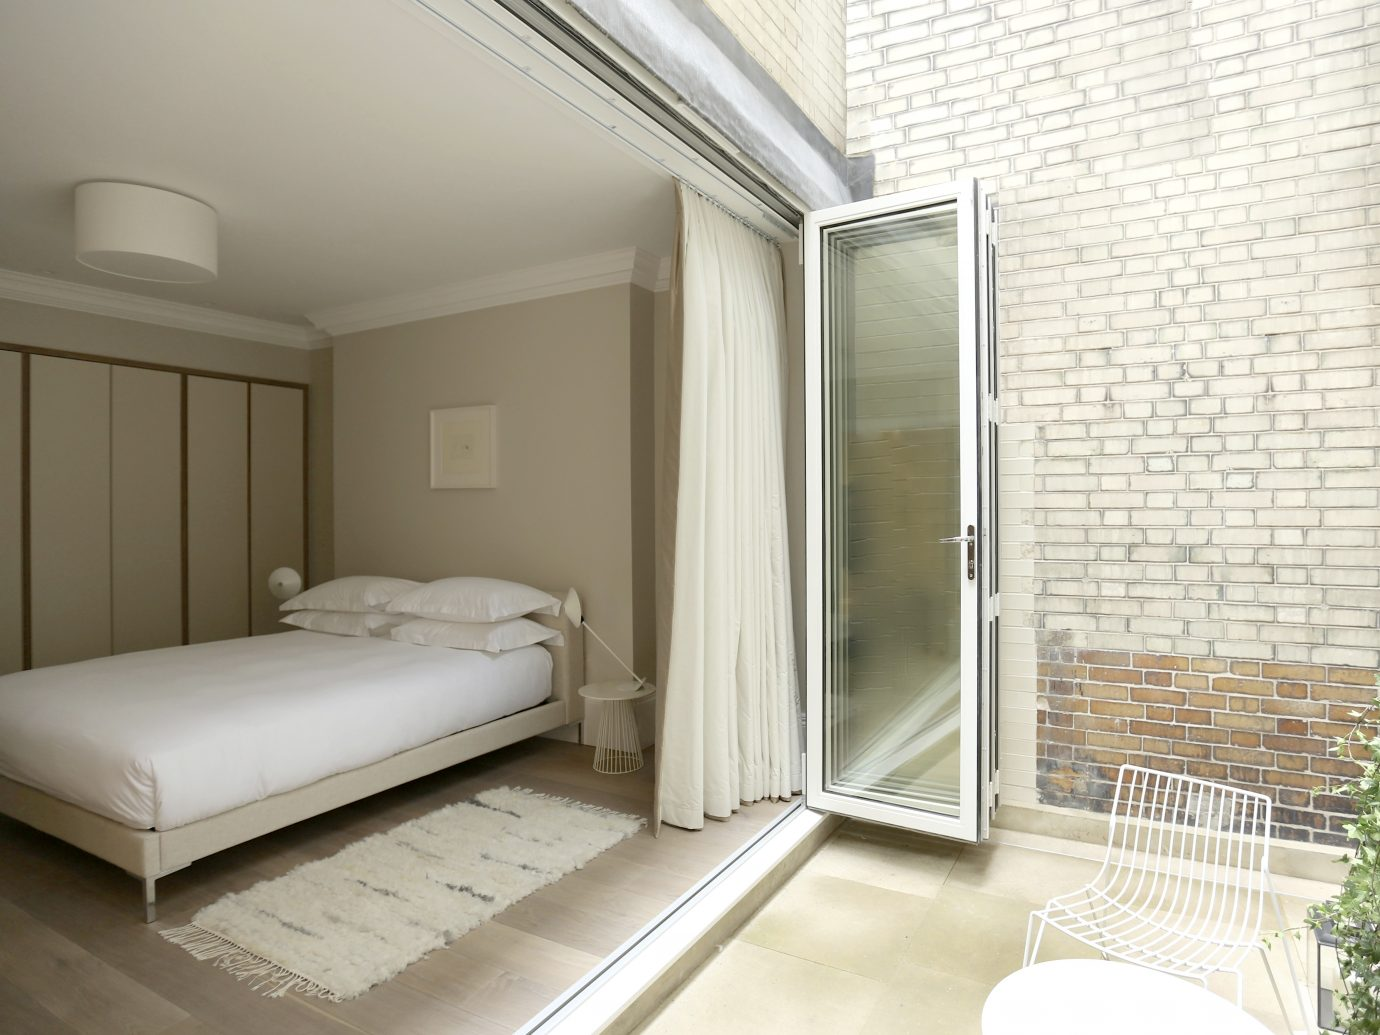 Bed open to outside at the Welbeck portion of the Living Rooms in London